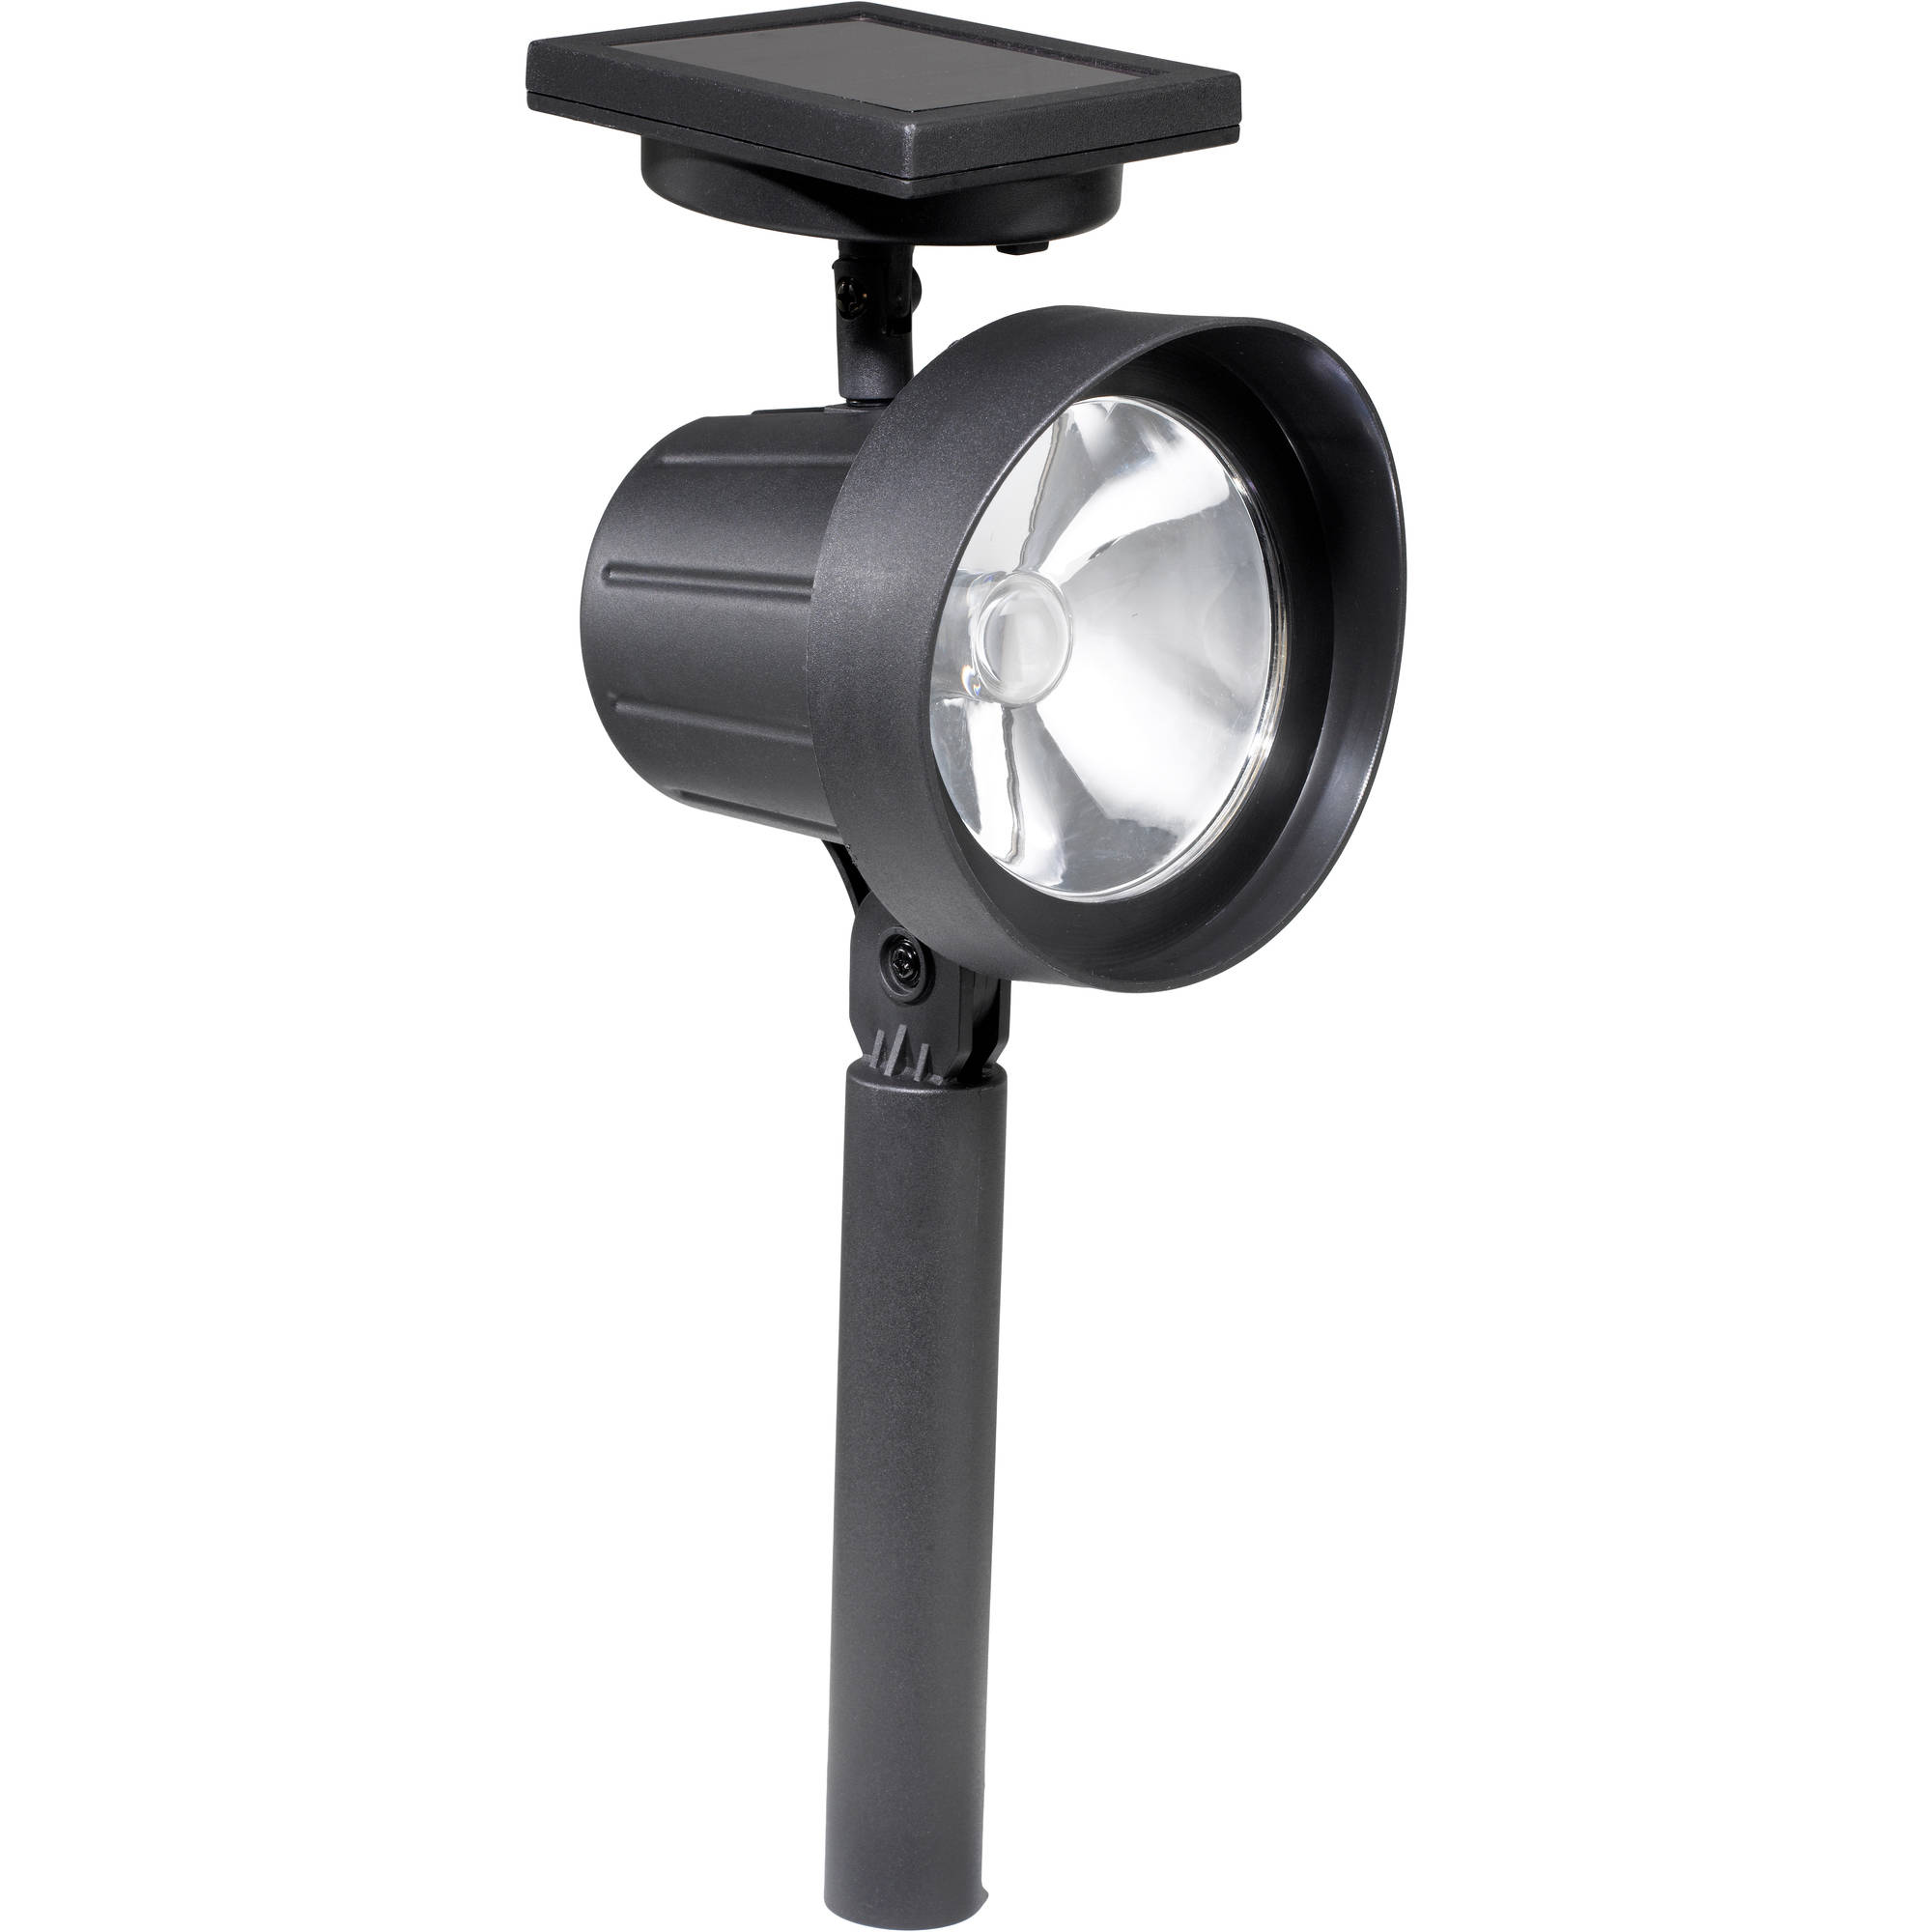 Product features - Better homes and gardens solar lights ...